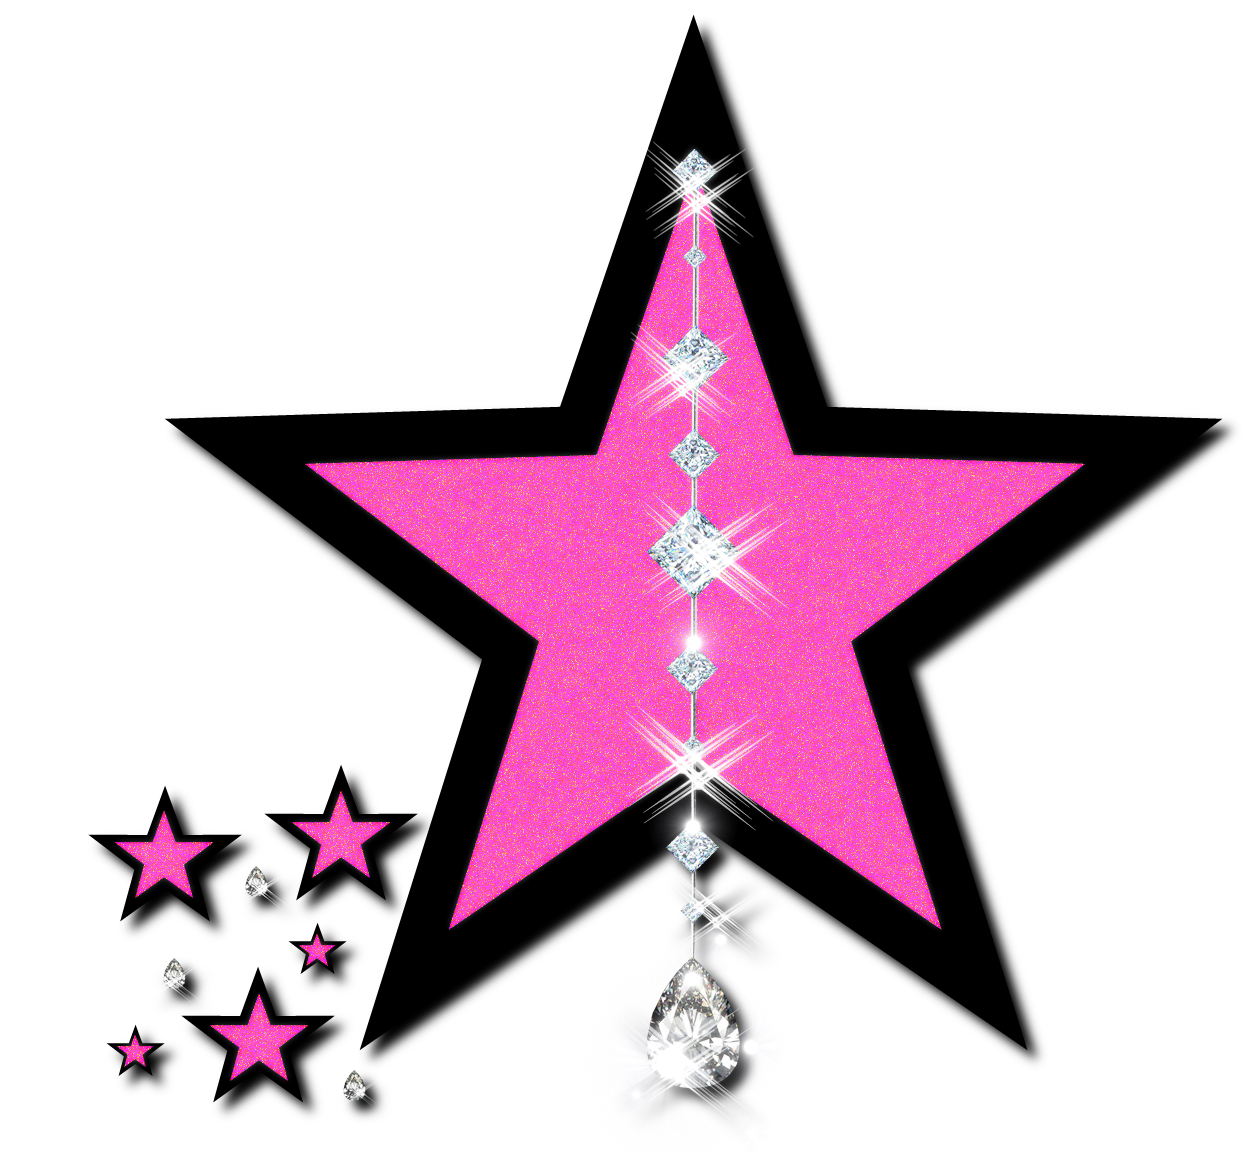 Shooting Star clipart dancing star Art Clipart Clip Download Free